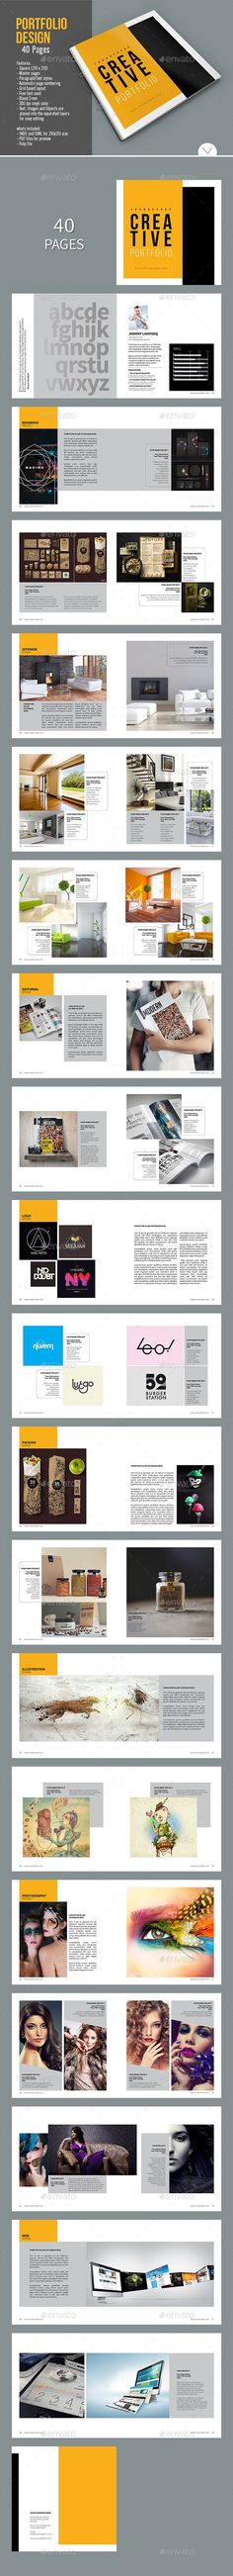 Multipurpose Portfolio Template More Indesign templates - fashion design brochure template